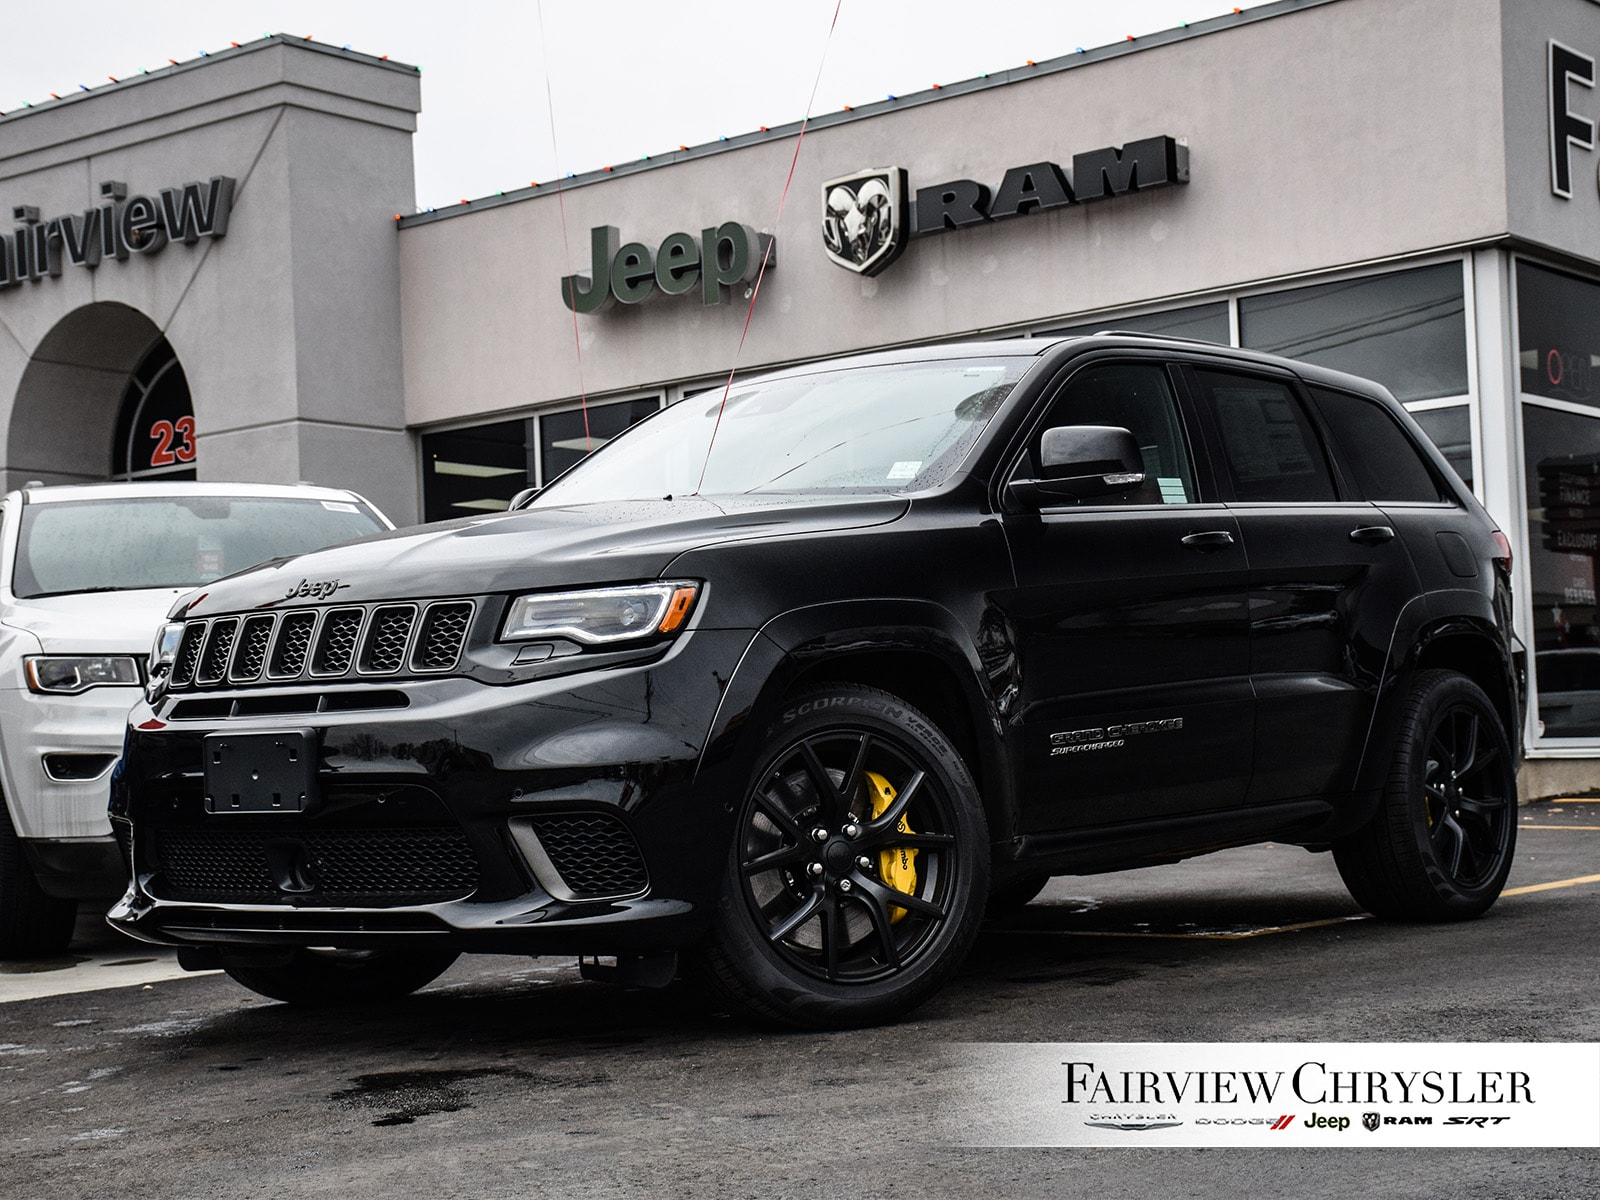 2018 Jeep Grand Cherokee Trackhawk SUV | 707HP | RED LEATHER | SUNROOF |